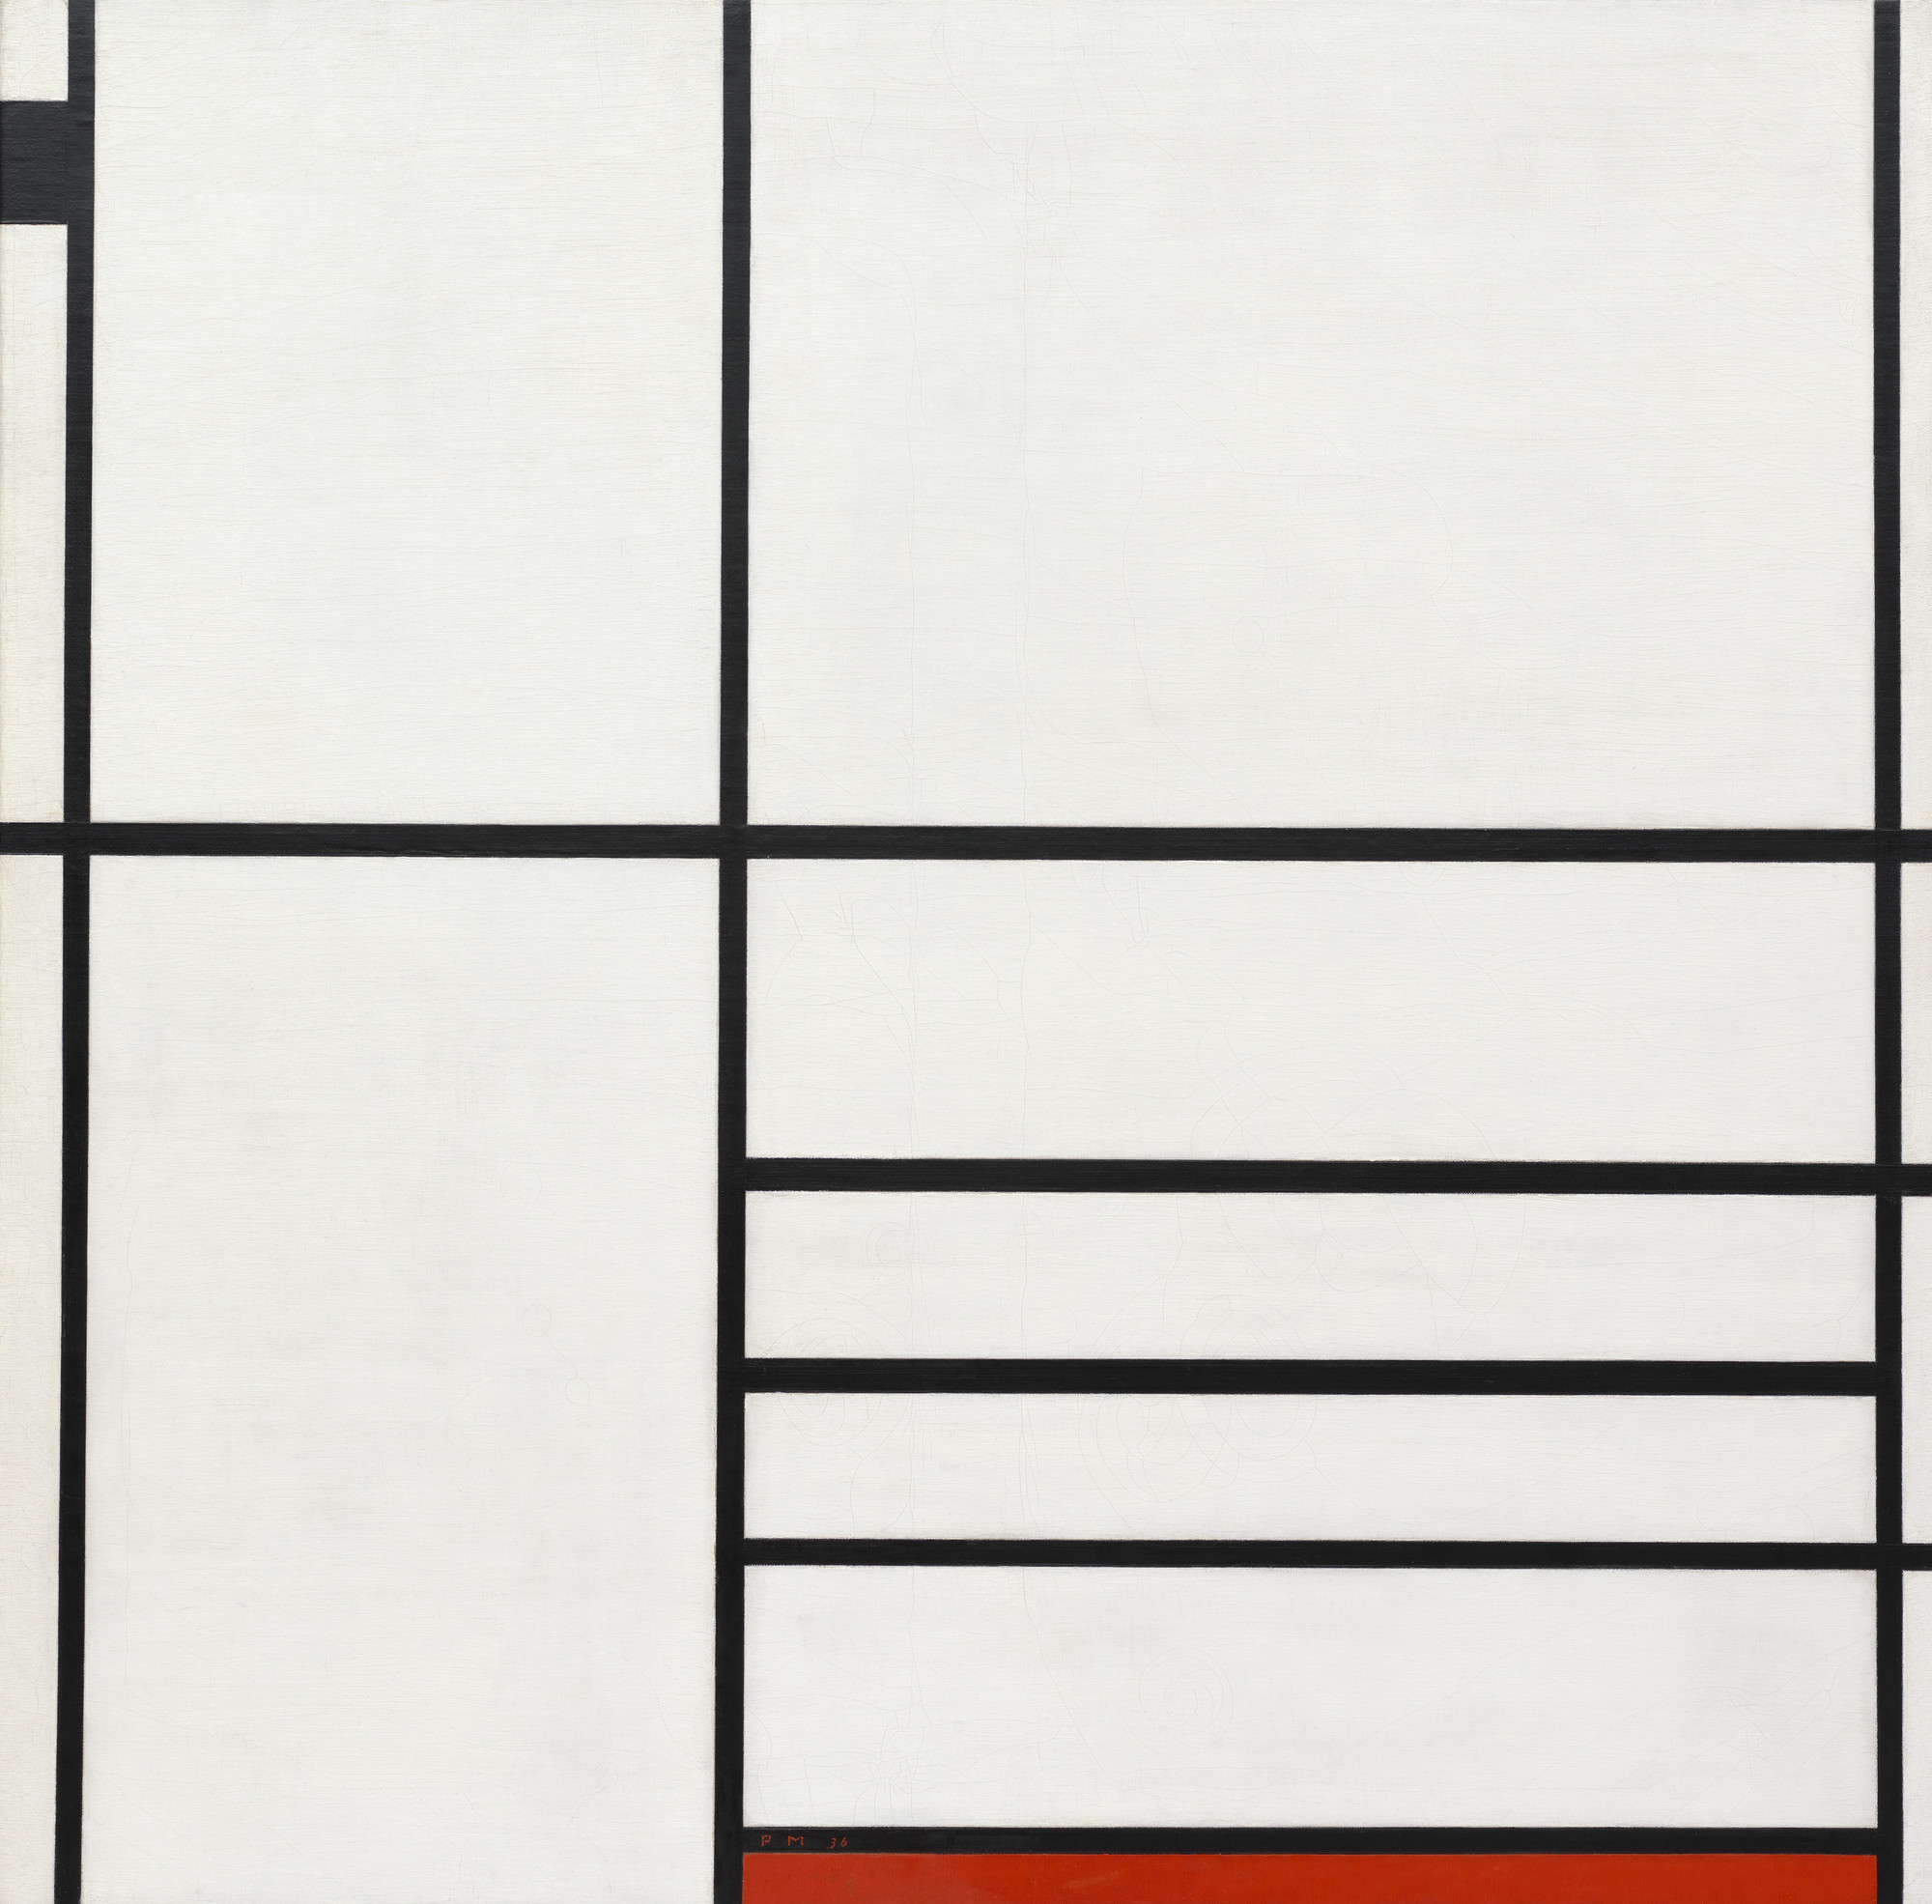 Piet Mondrian. Composition in White, Black, and Red. Paris 1936